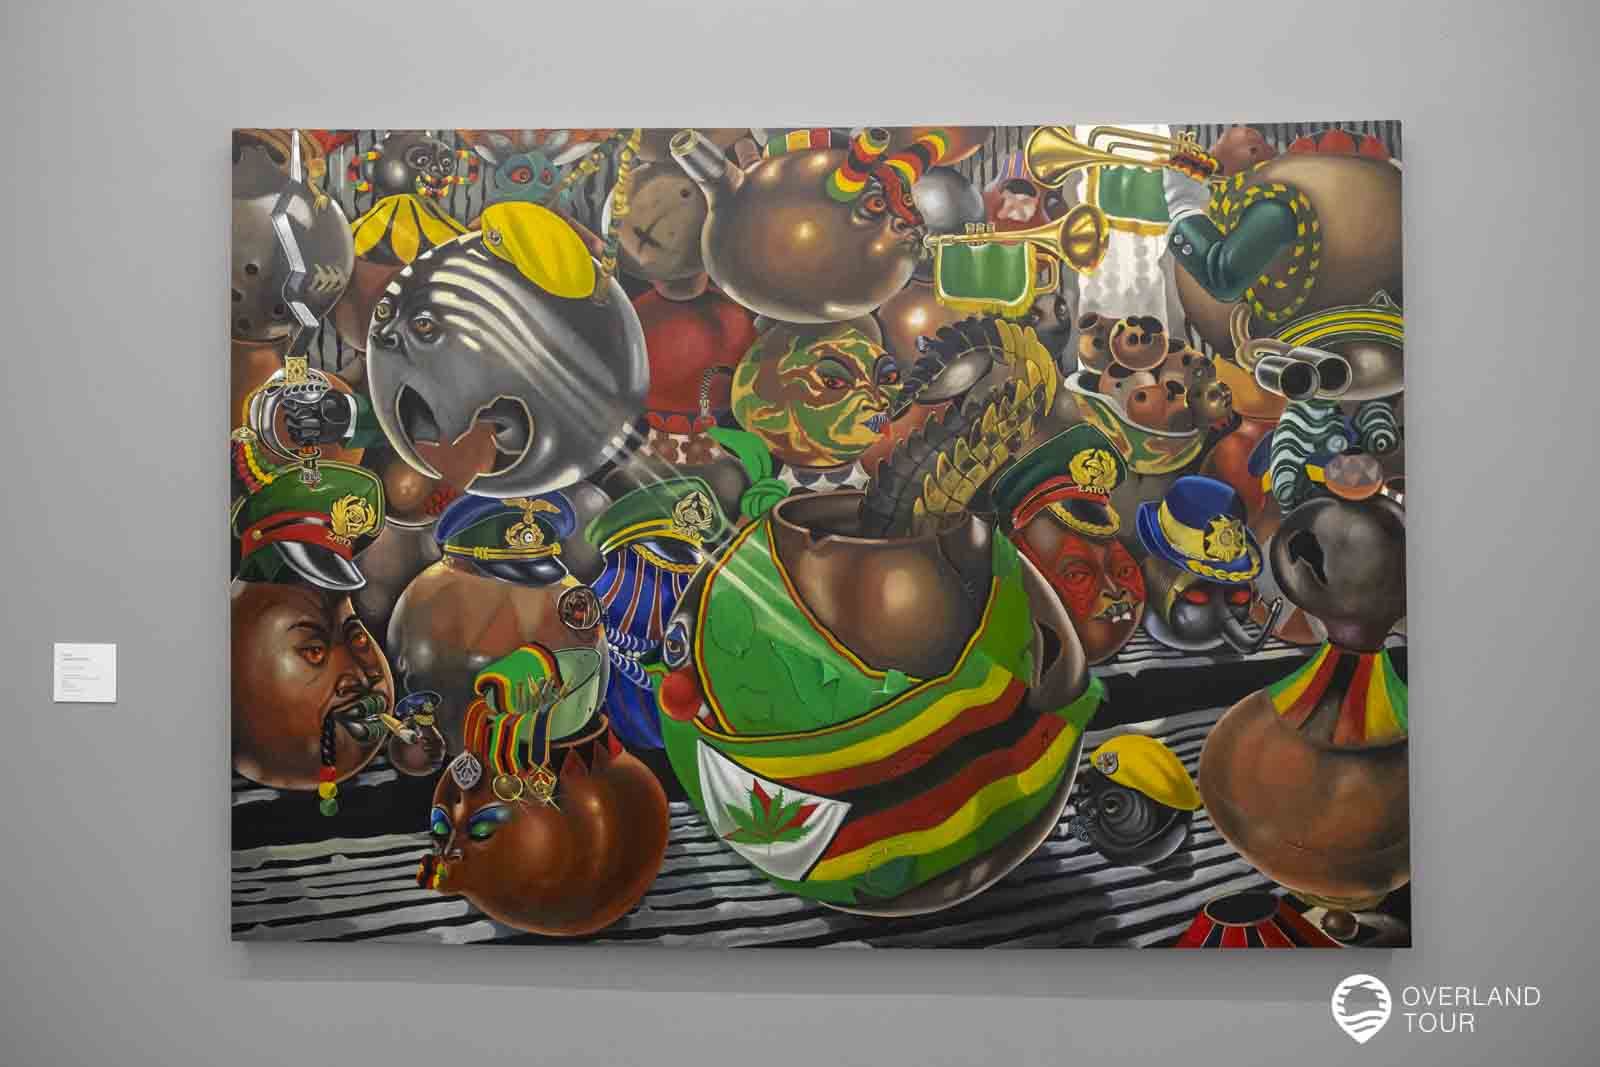 Das ZEITS MOCCA - Museum of Contemporary Art Africa - in Kapstad